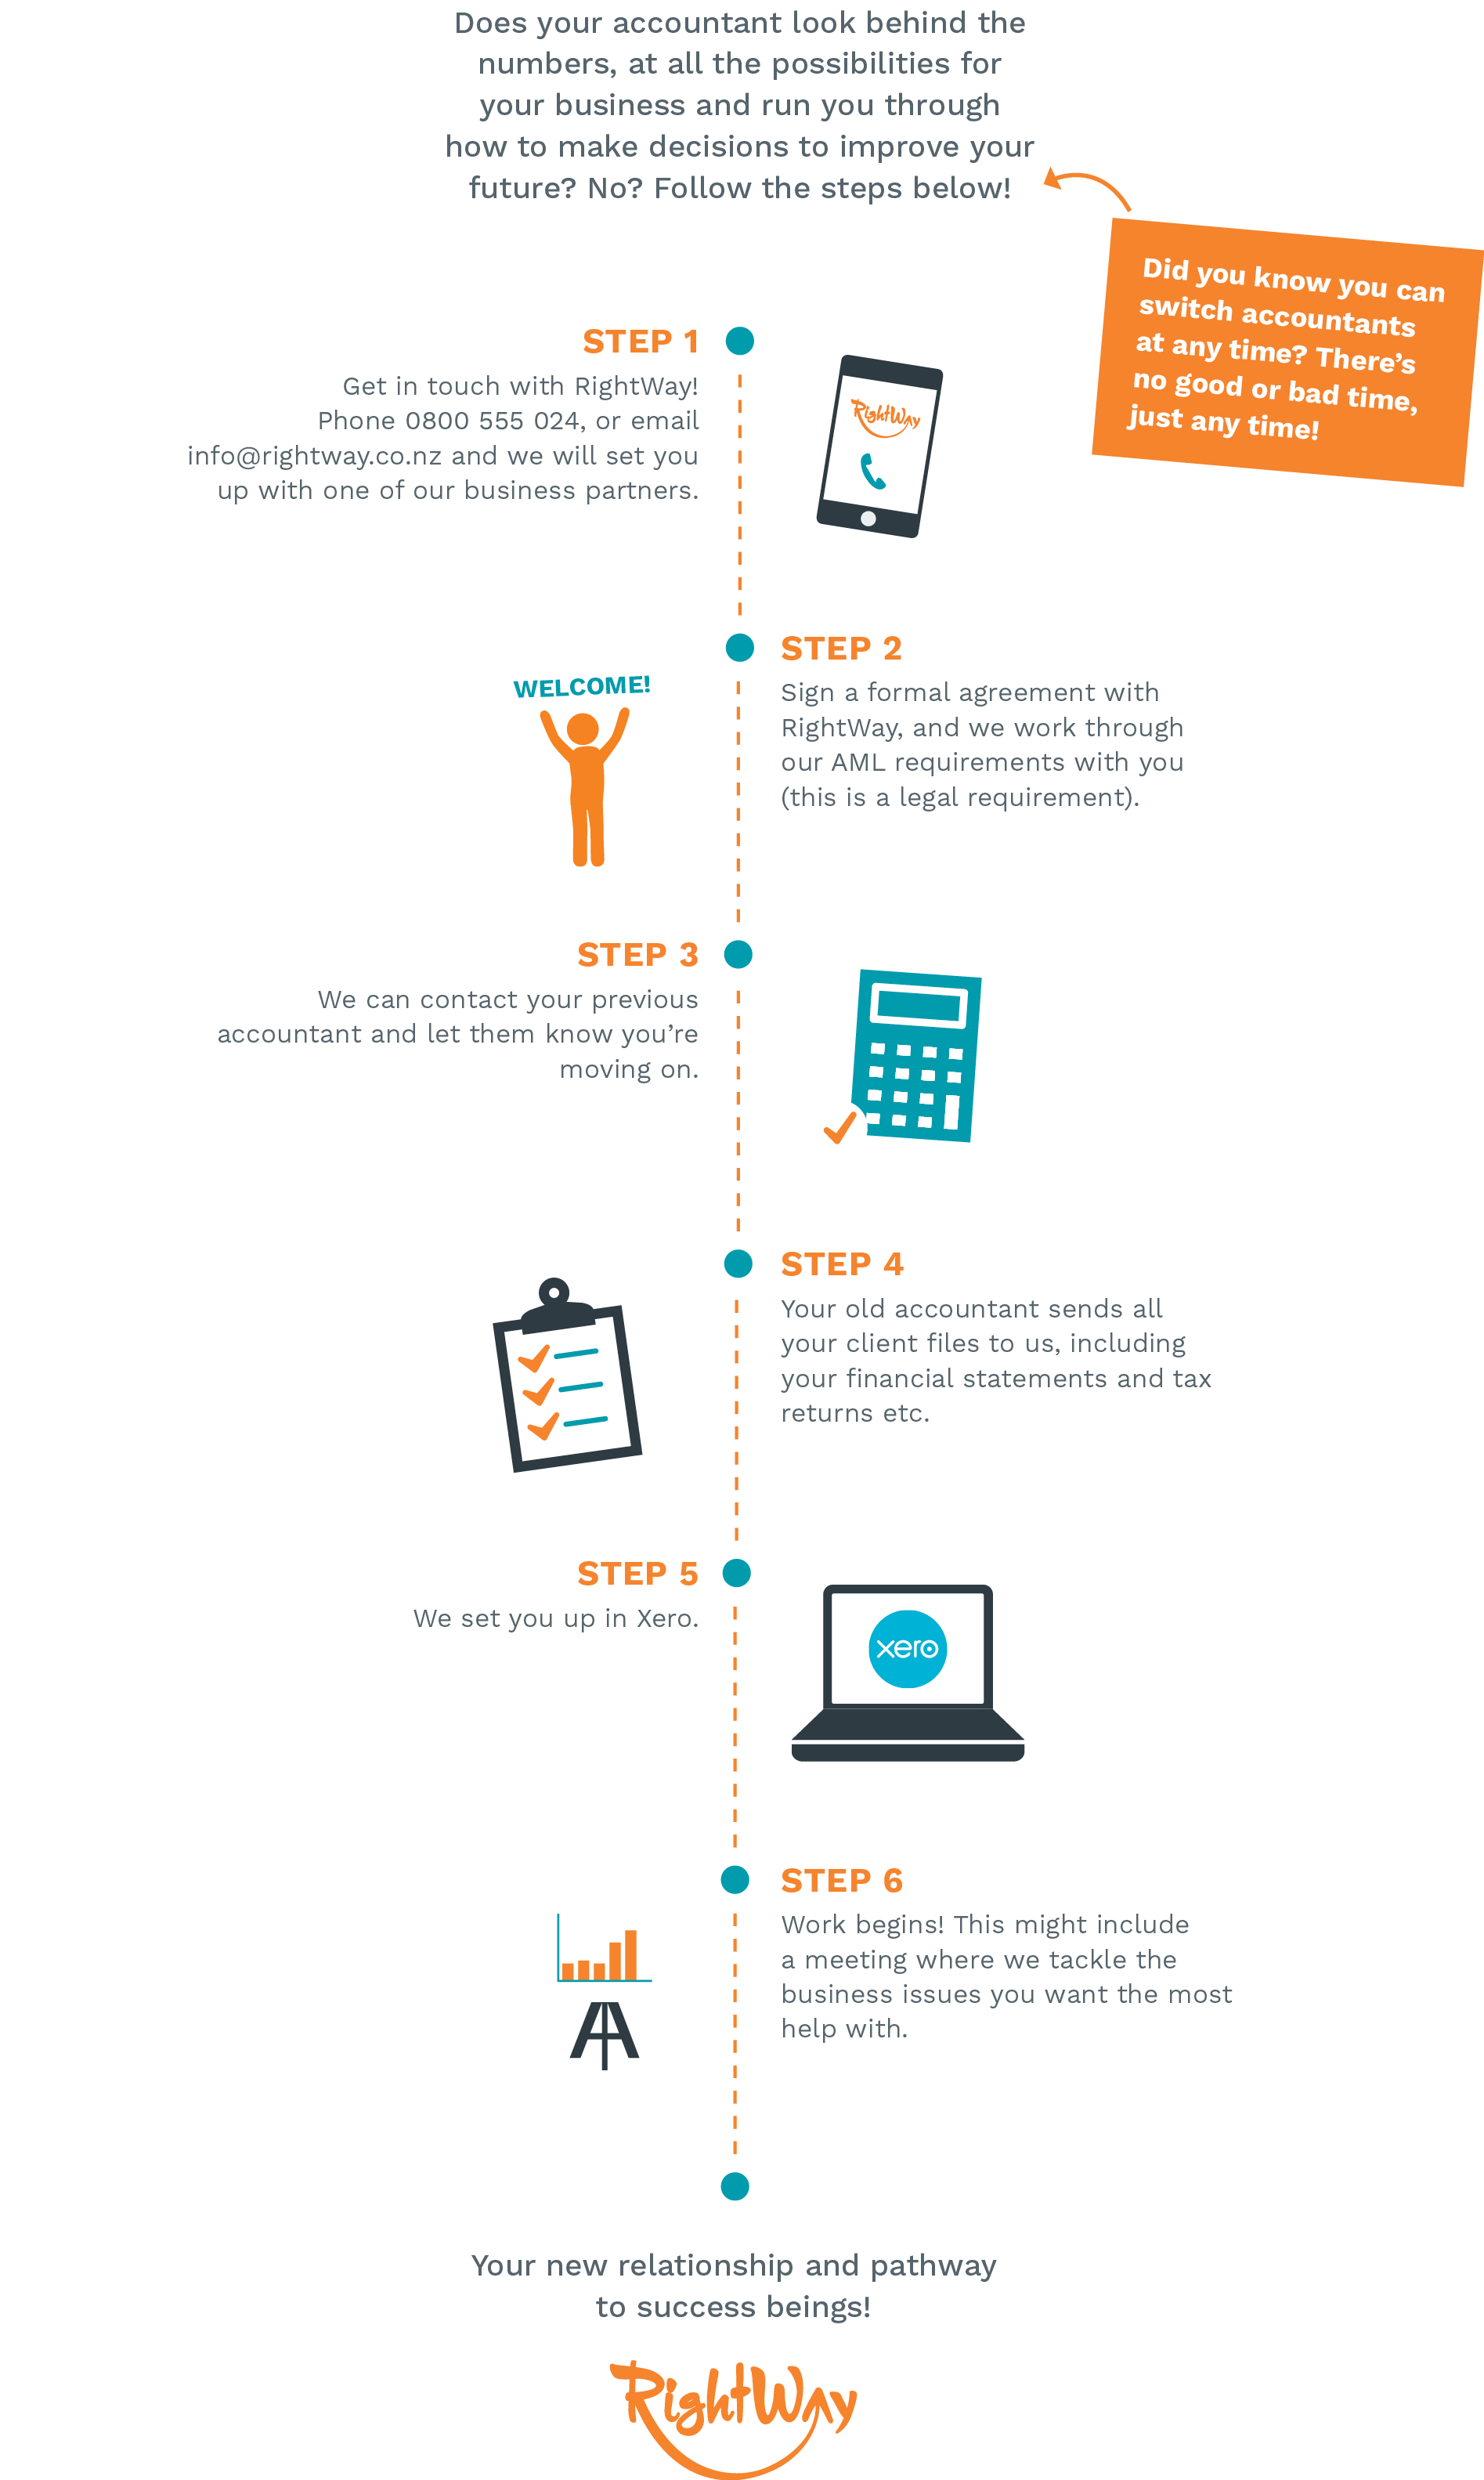 How to switch accountant infographic